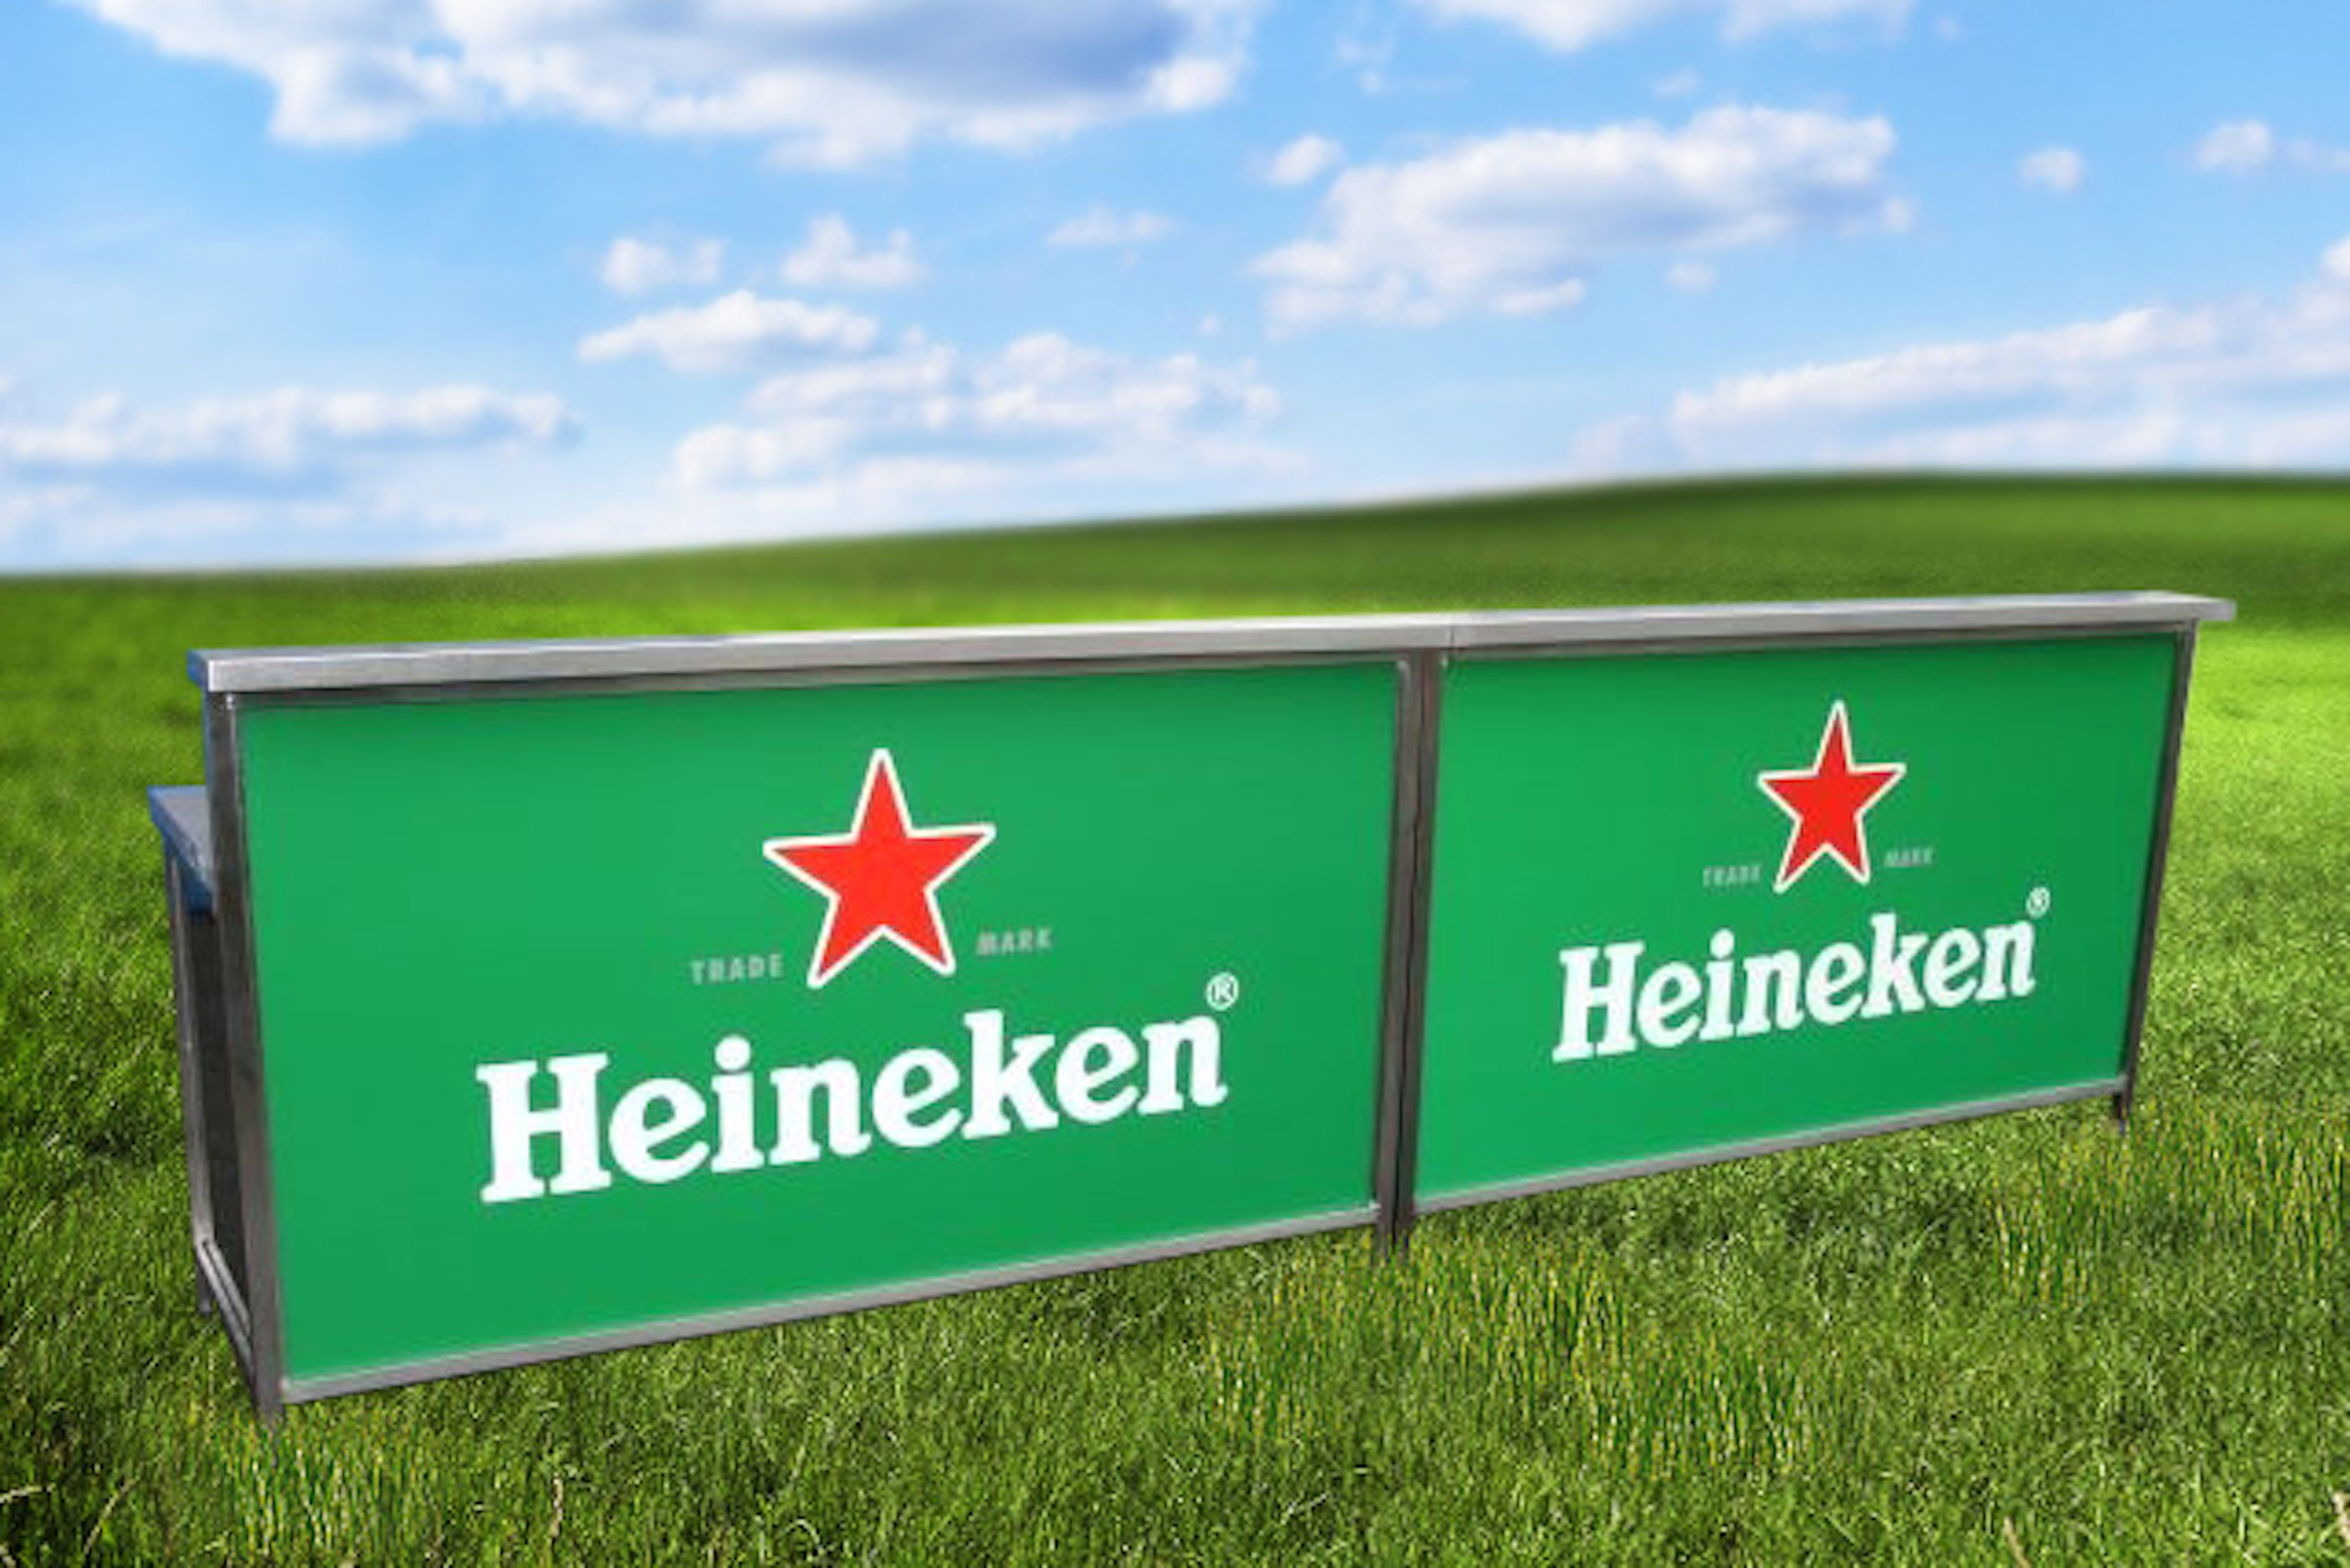 <p>Bespoke Products – Mobile Carts – Mobile Bars – Custom Modular Foldable Branded Design</p> <p></p> <p>Stylish, eloquent & bespoke made Mobile Foldable Drinks Bar – Heineken branding</p> <p></p> <p>Designed to meet the customer needs & objectives to include draught dispense, champagne, Pimms, multi-purpose etc or whatever the customer requires to make their mobile beverage bar unique & exclusive to their brand</p> <p></p> <p>One example of a design. We can design and manufacture to meet customer's specific objectives – foldable, static, but still mobile</p>